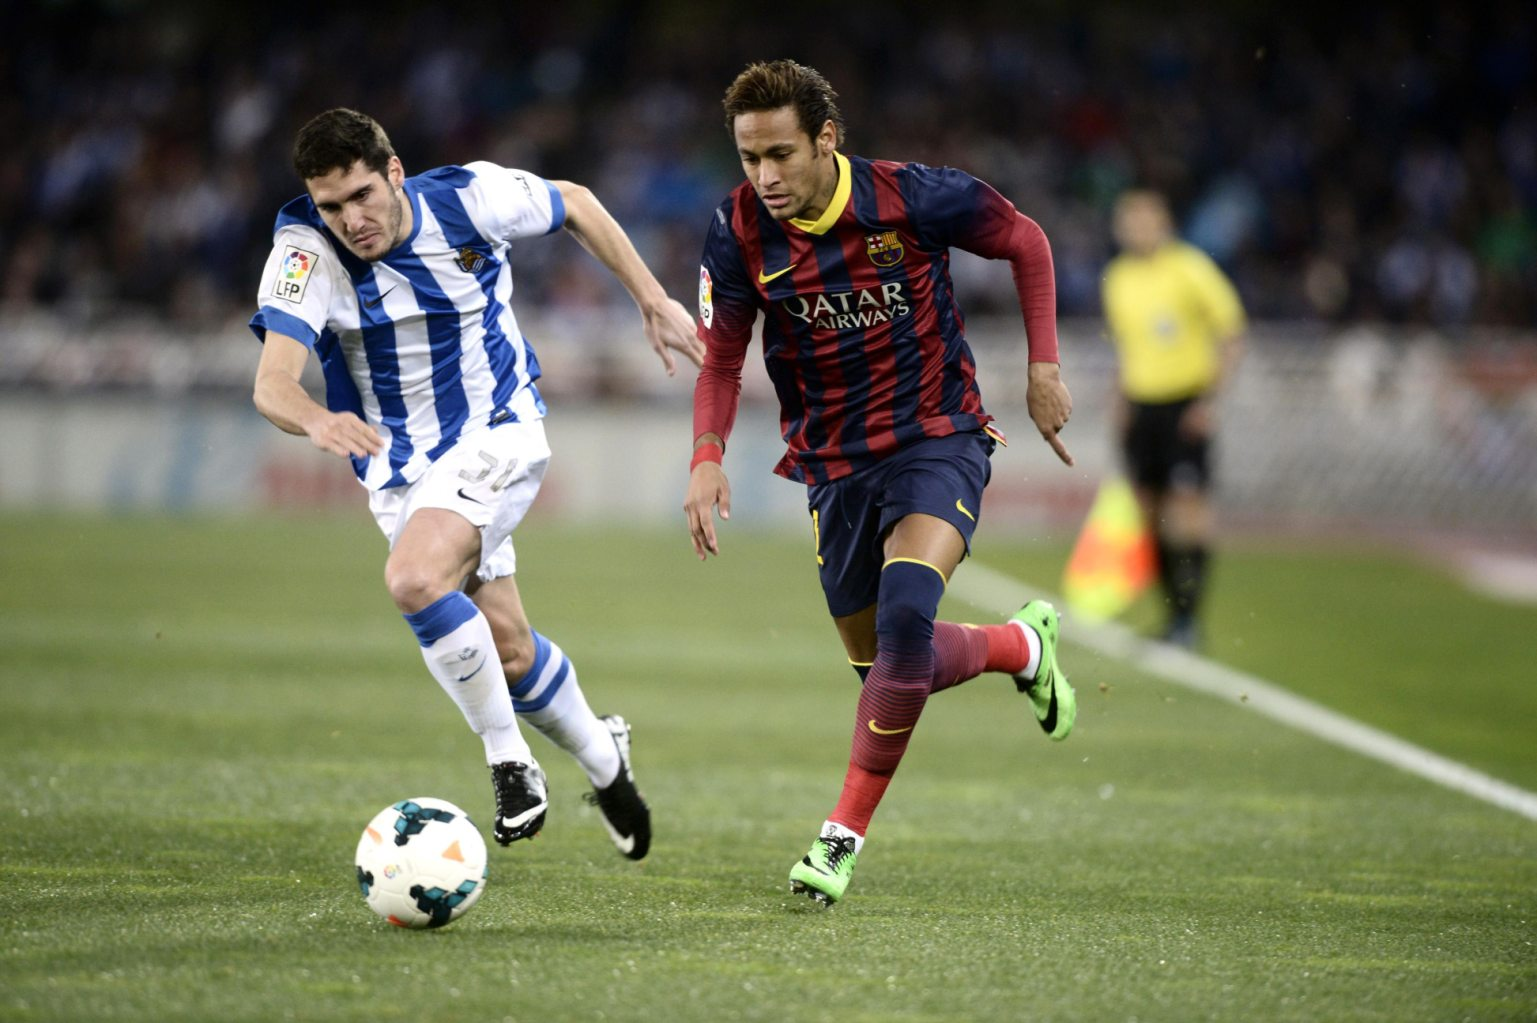 Neymar running past a defender